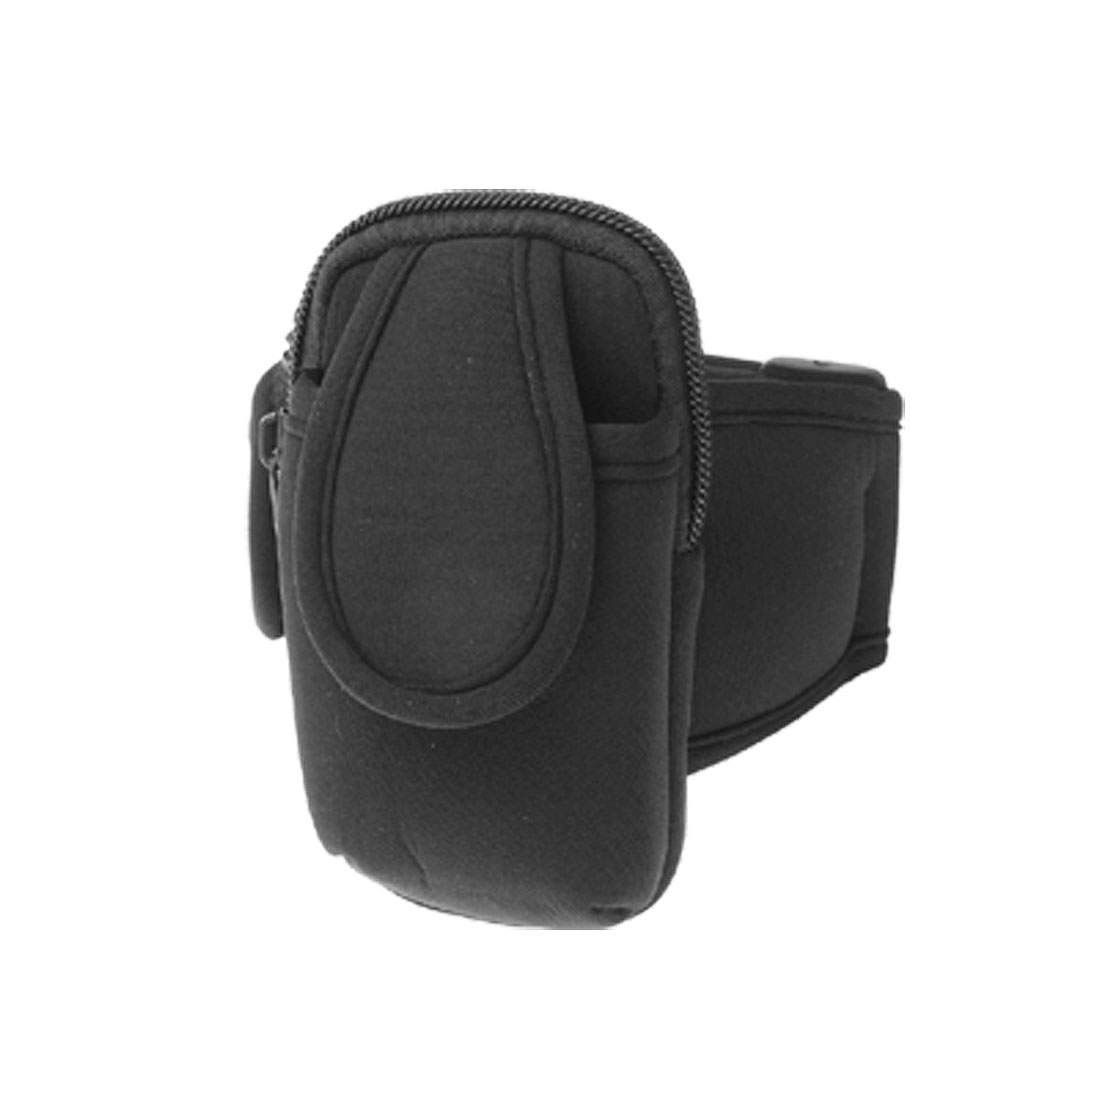 Black Cell Phone Arm Pouch Case for Nokia 7650 & MP3 MP4